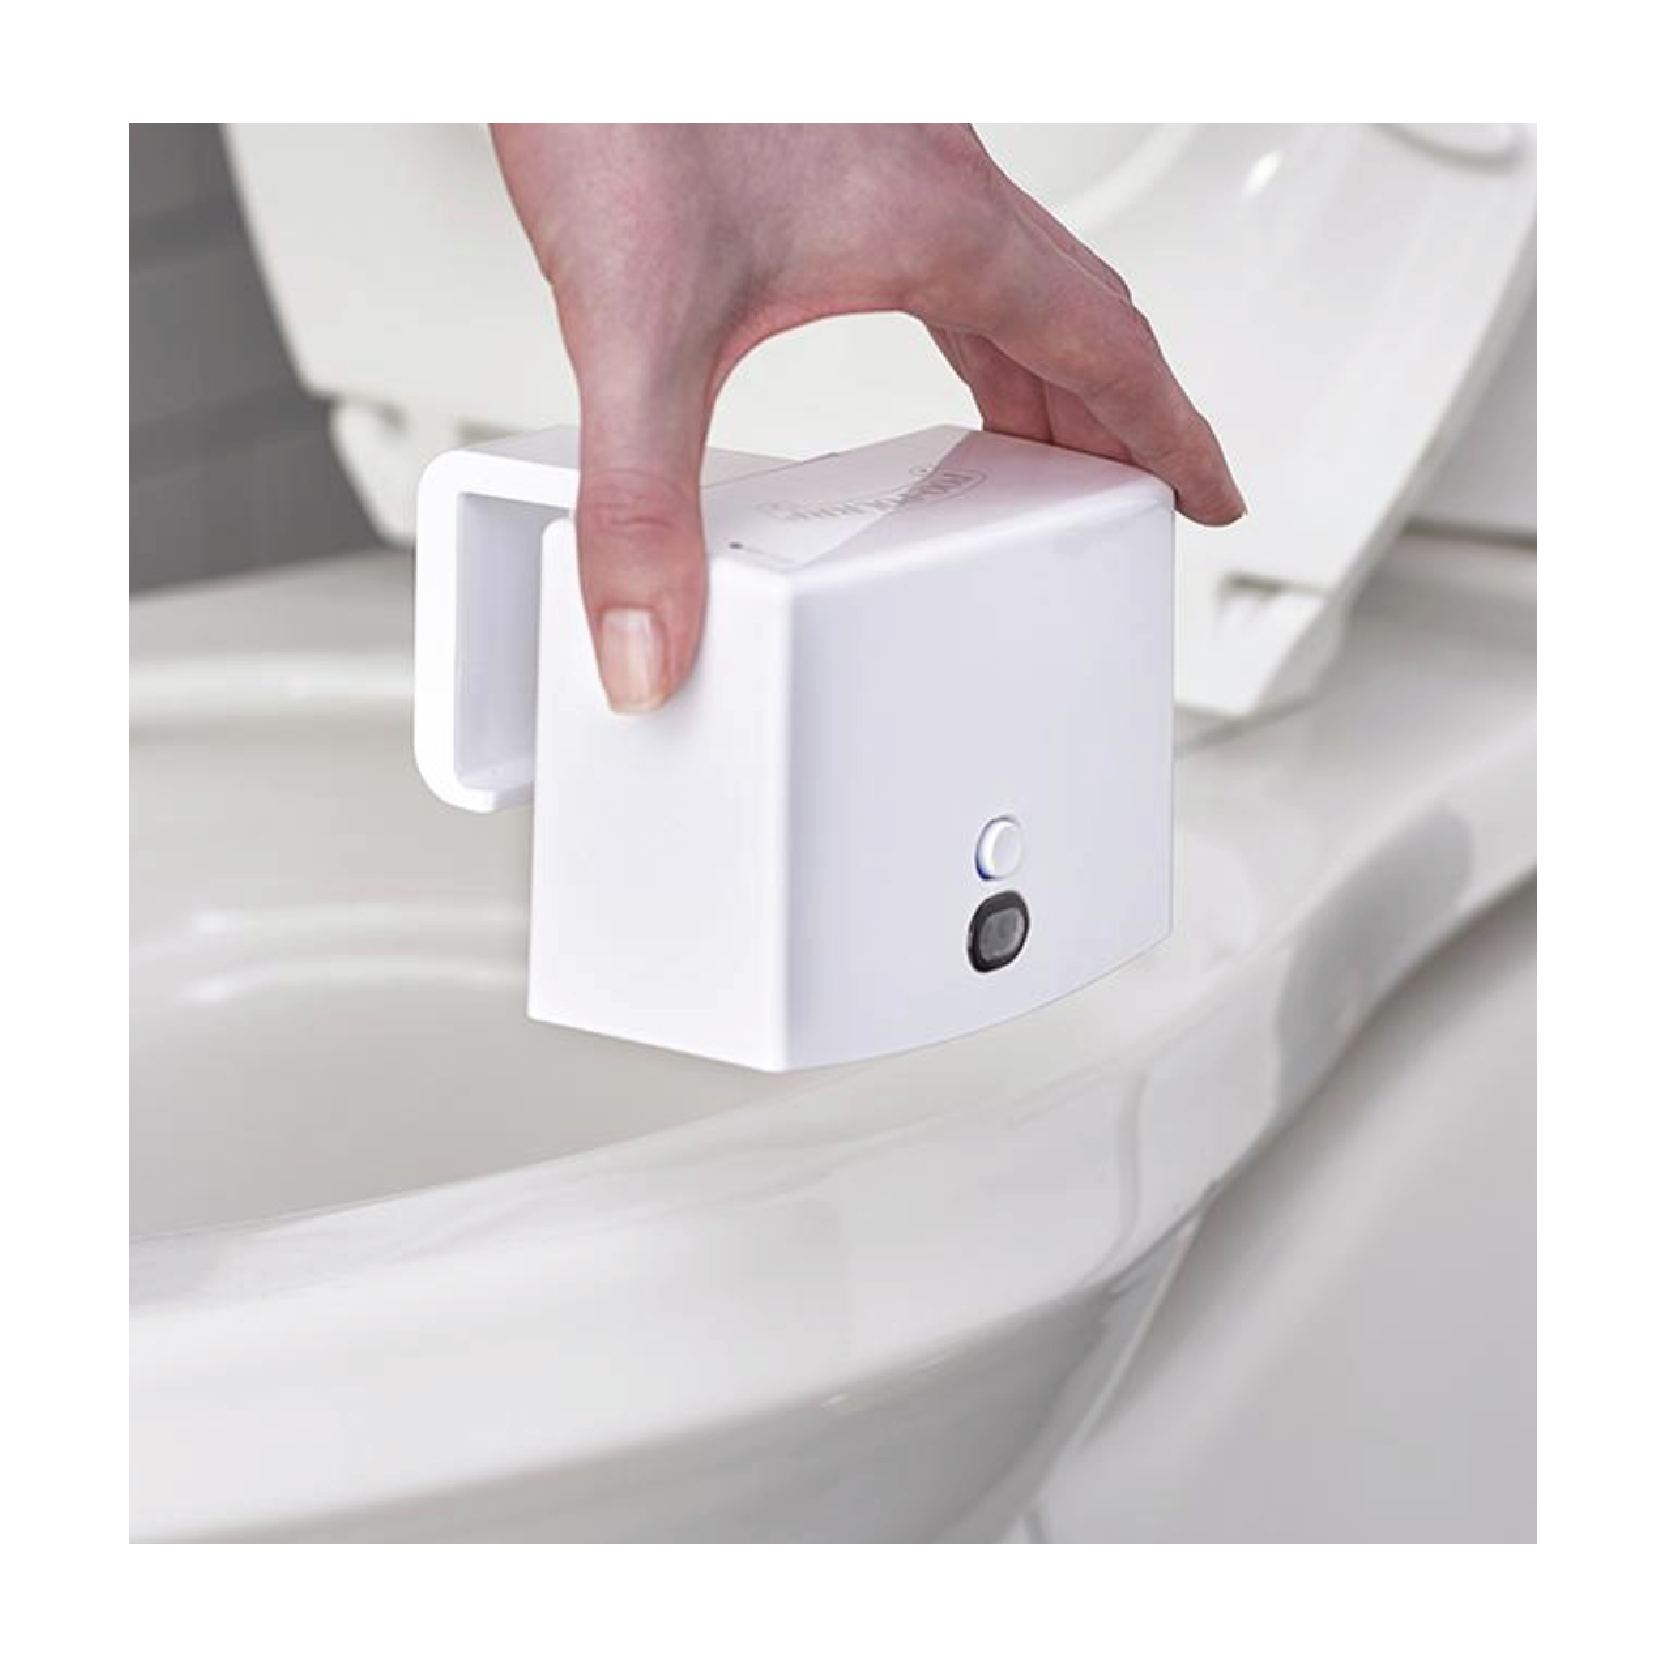 Poo-Pourri The Assistant - $49.99 at Poo-Pourri (currently on sale Buy One Get One Free)This automatic toilet deodorizer works before you go with one swipe of the hand. Discreet and functional, this is honestly just a great gift for anyone.